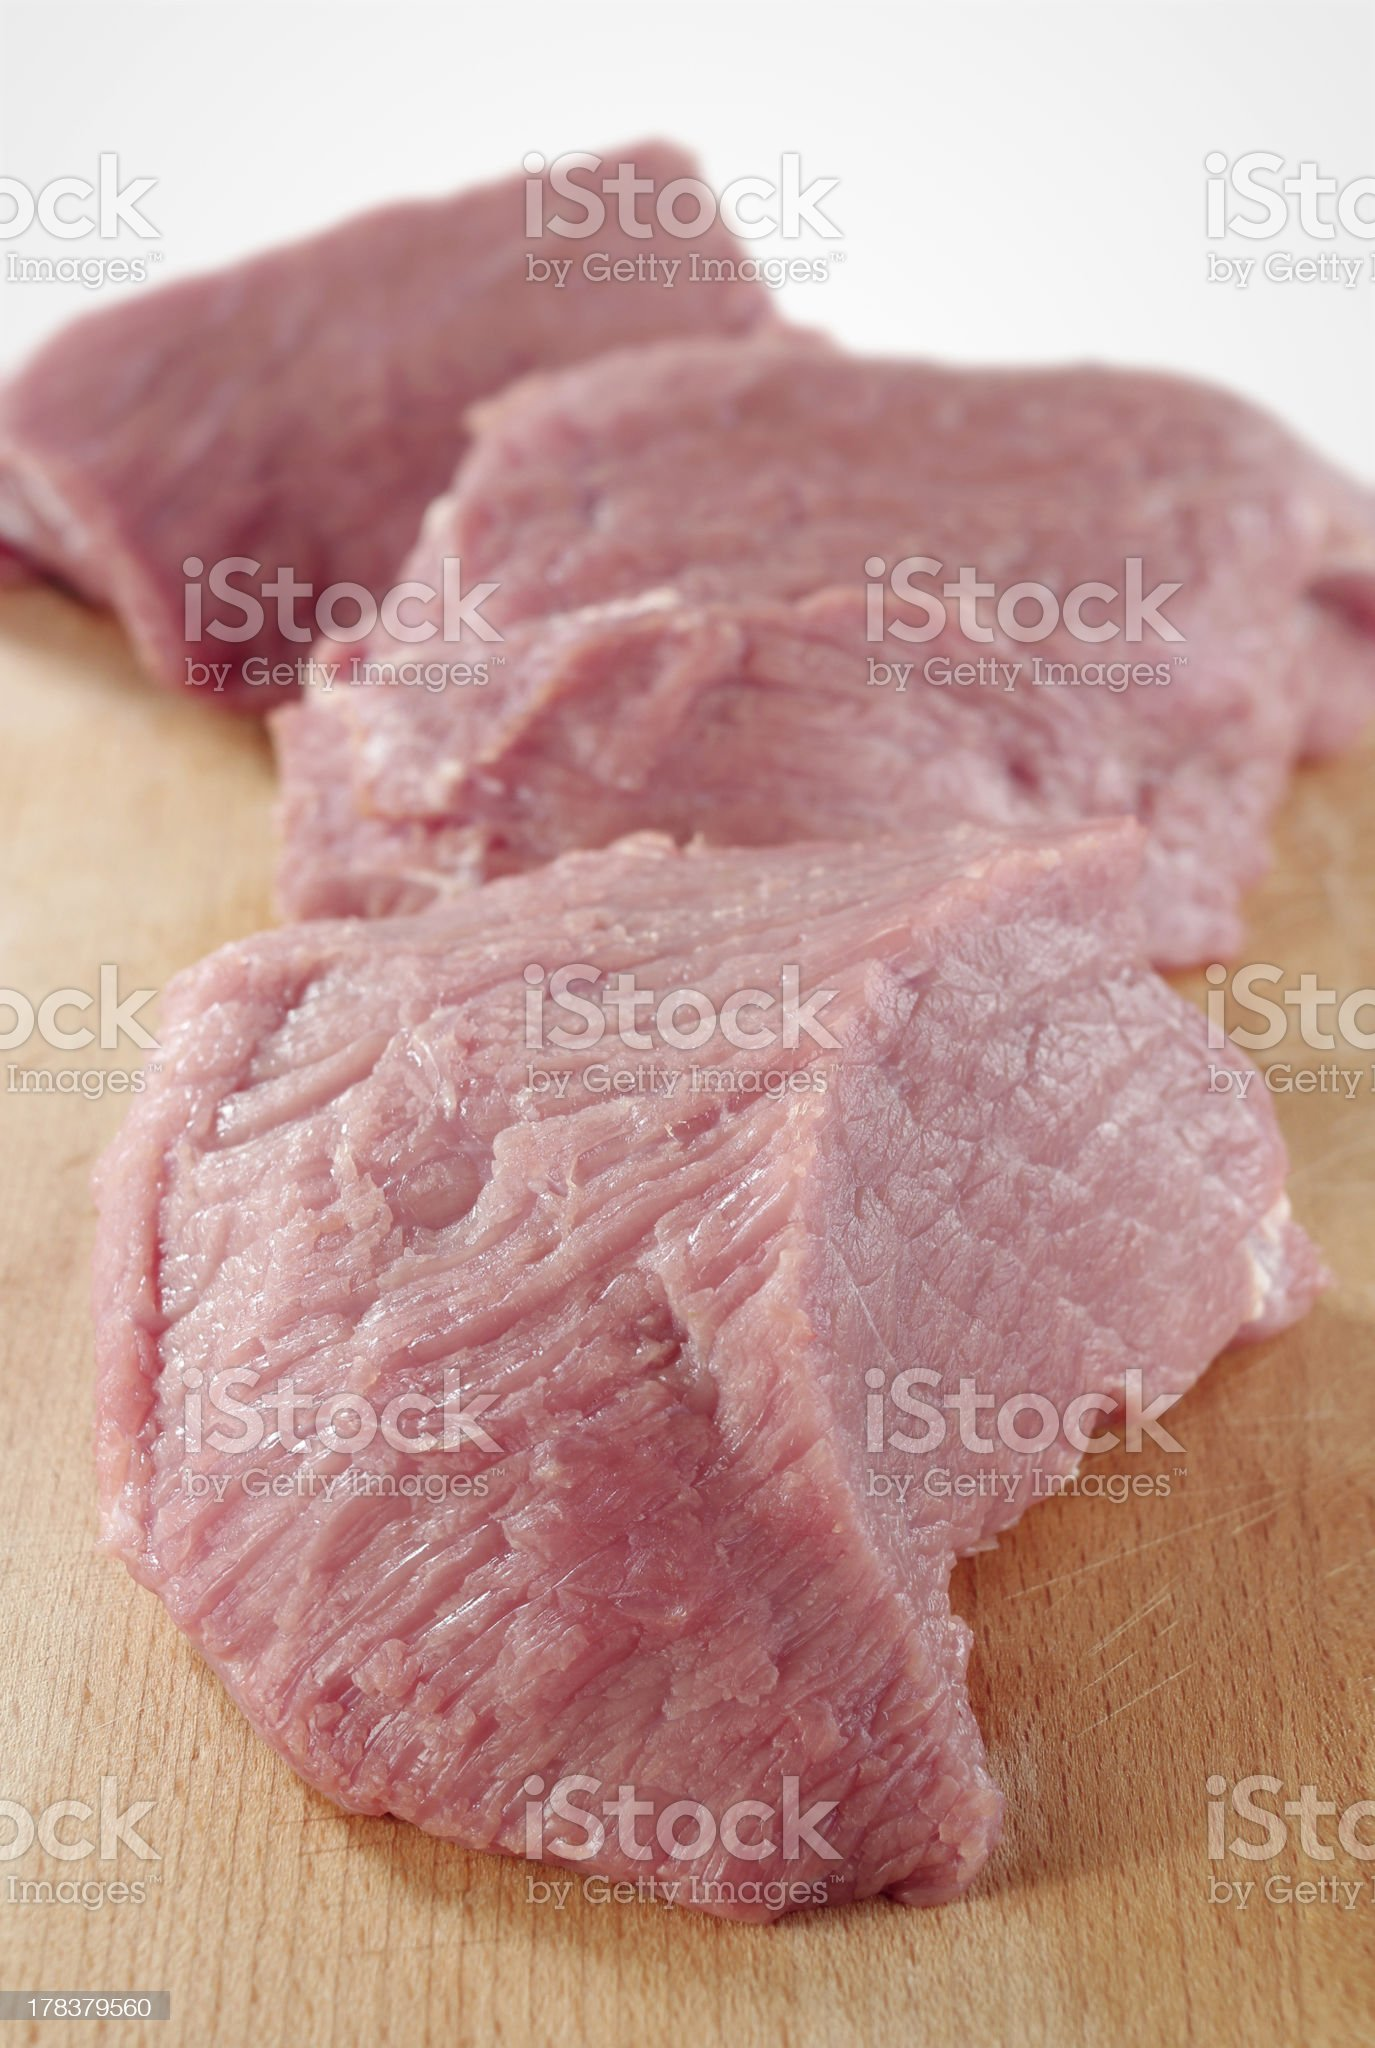 Raw beef meat royalty-free stock photo